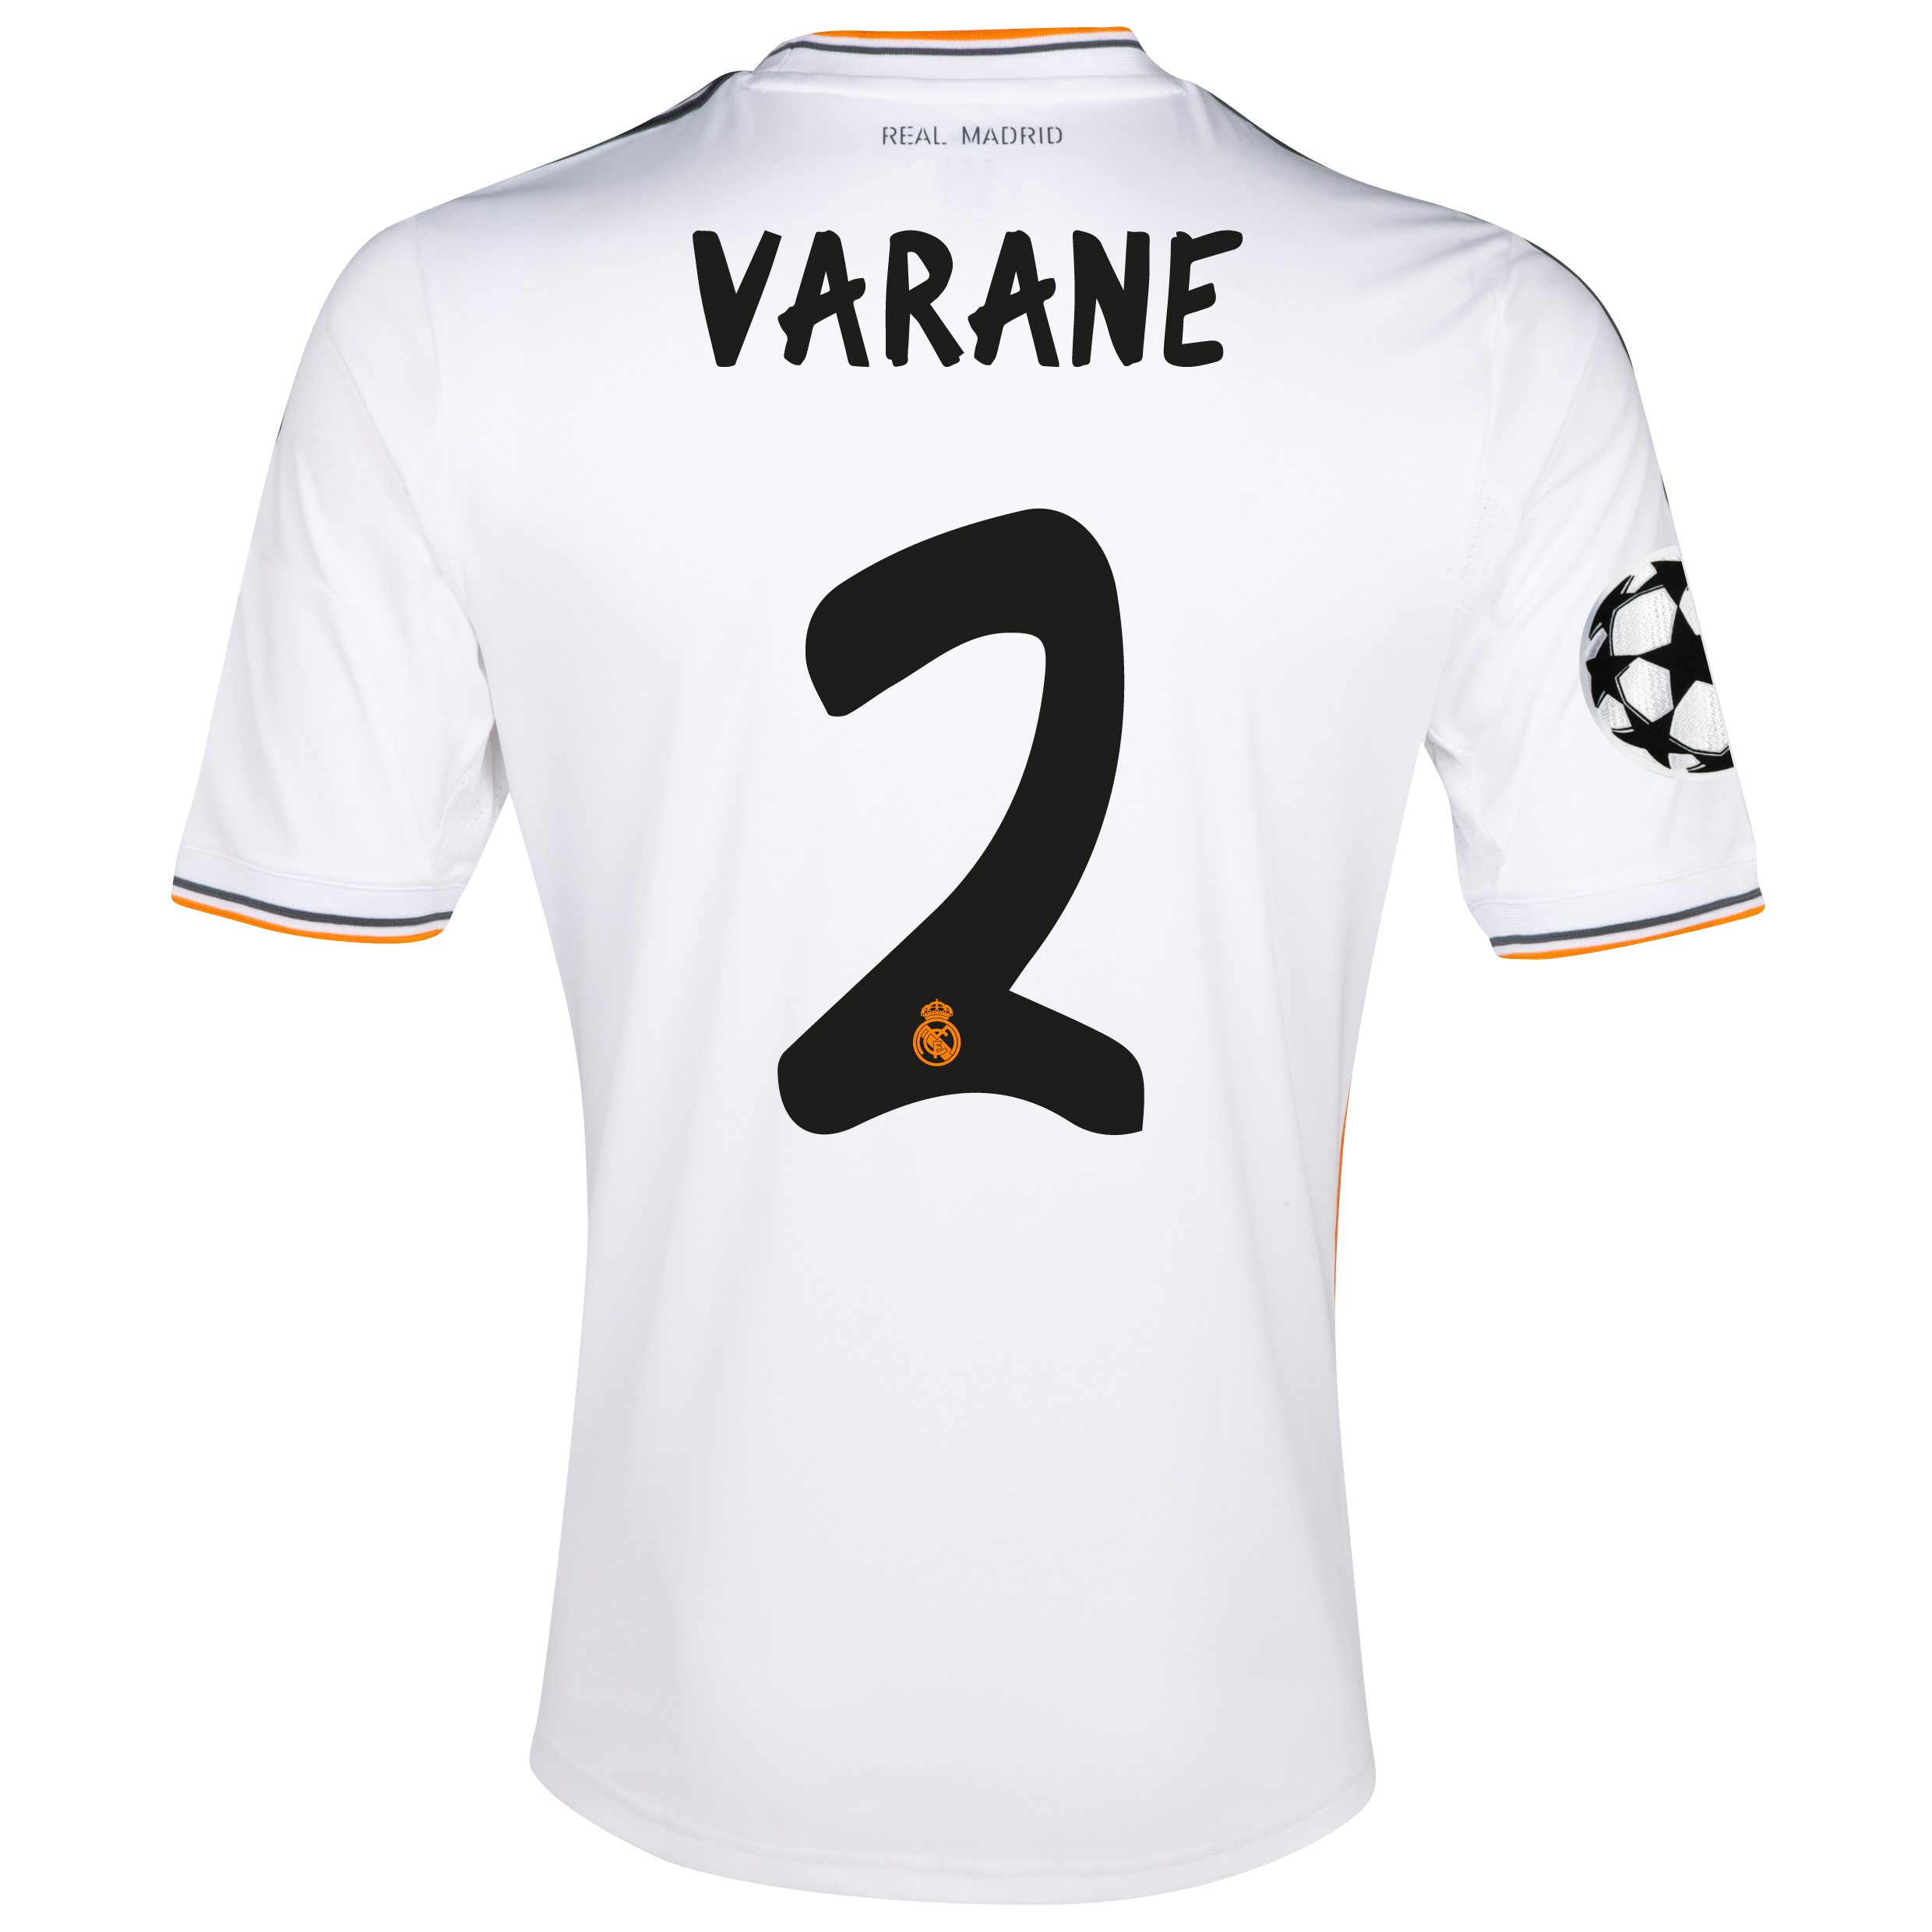 Real Madrid UEFA Champions League Home Shirt 2013/14 - kids with Varane 2 printing